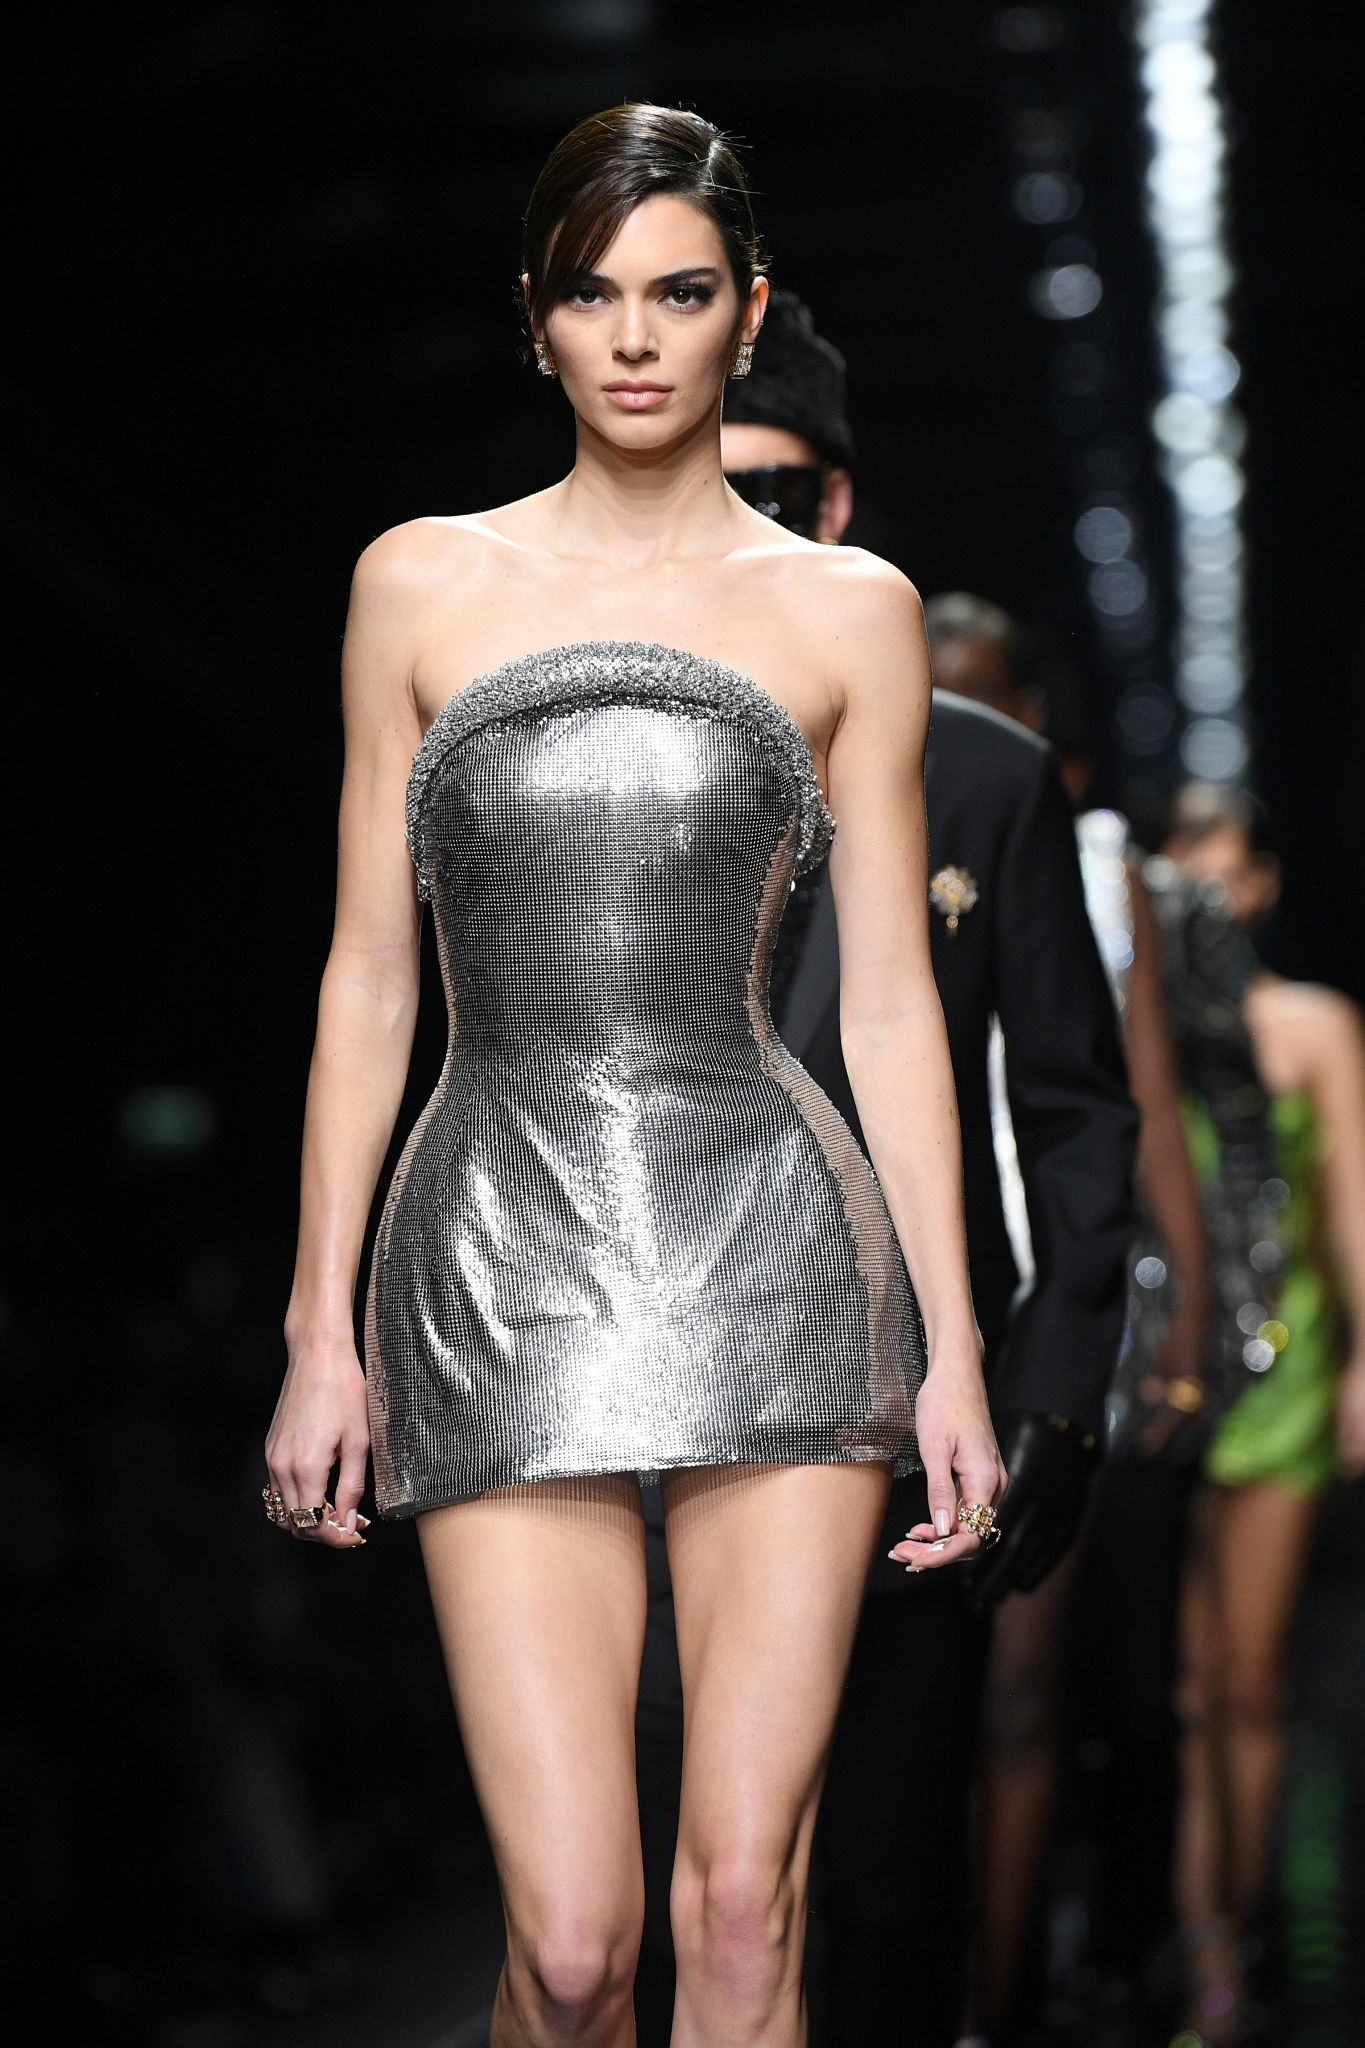 Kendall Jenner - Runaway at Versace show at Milan Fashion Week 2020